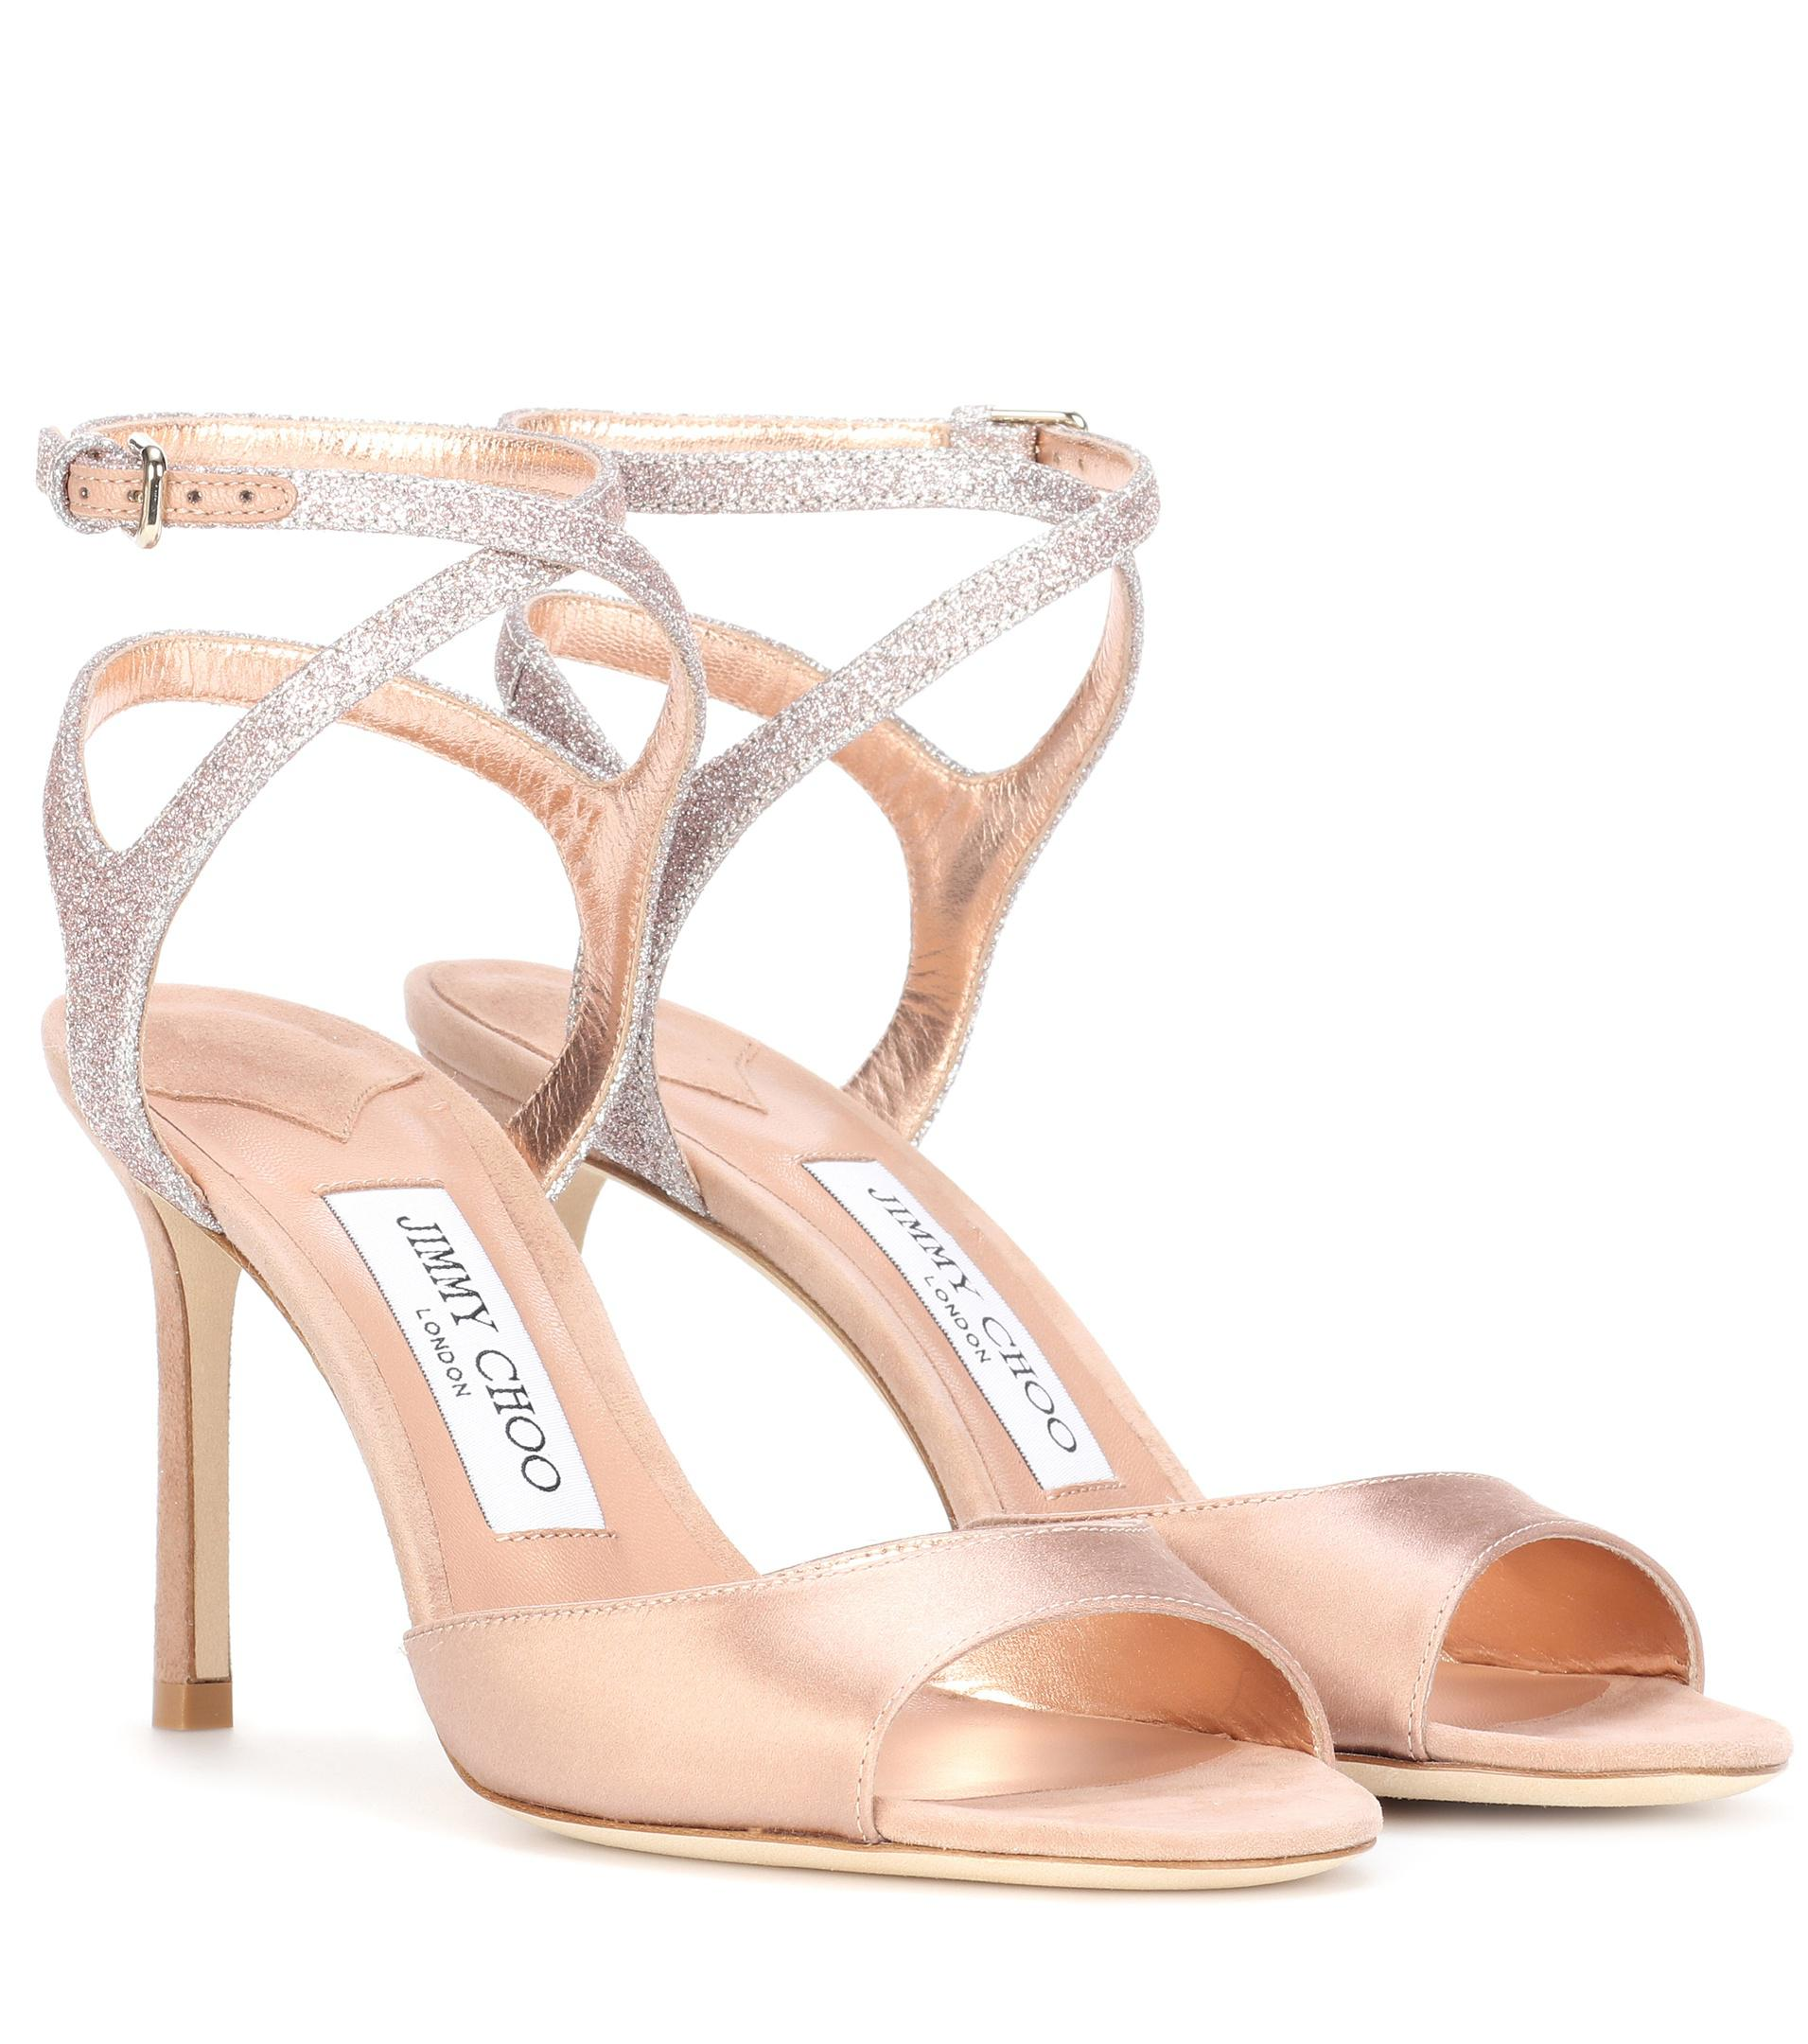 96a3a2b978fa Jimmy Choo Helen 85 Satin And Glitter Sandals in Pink - Lyst